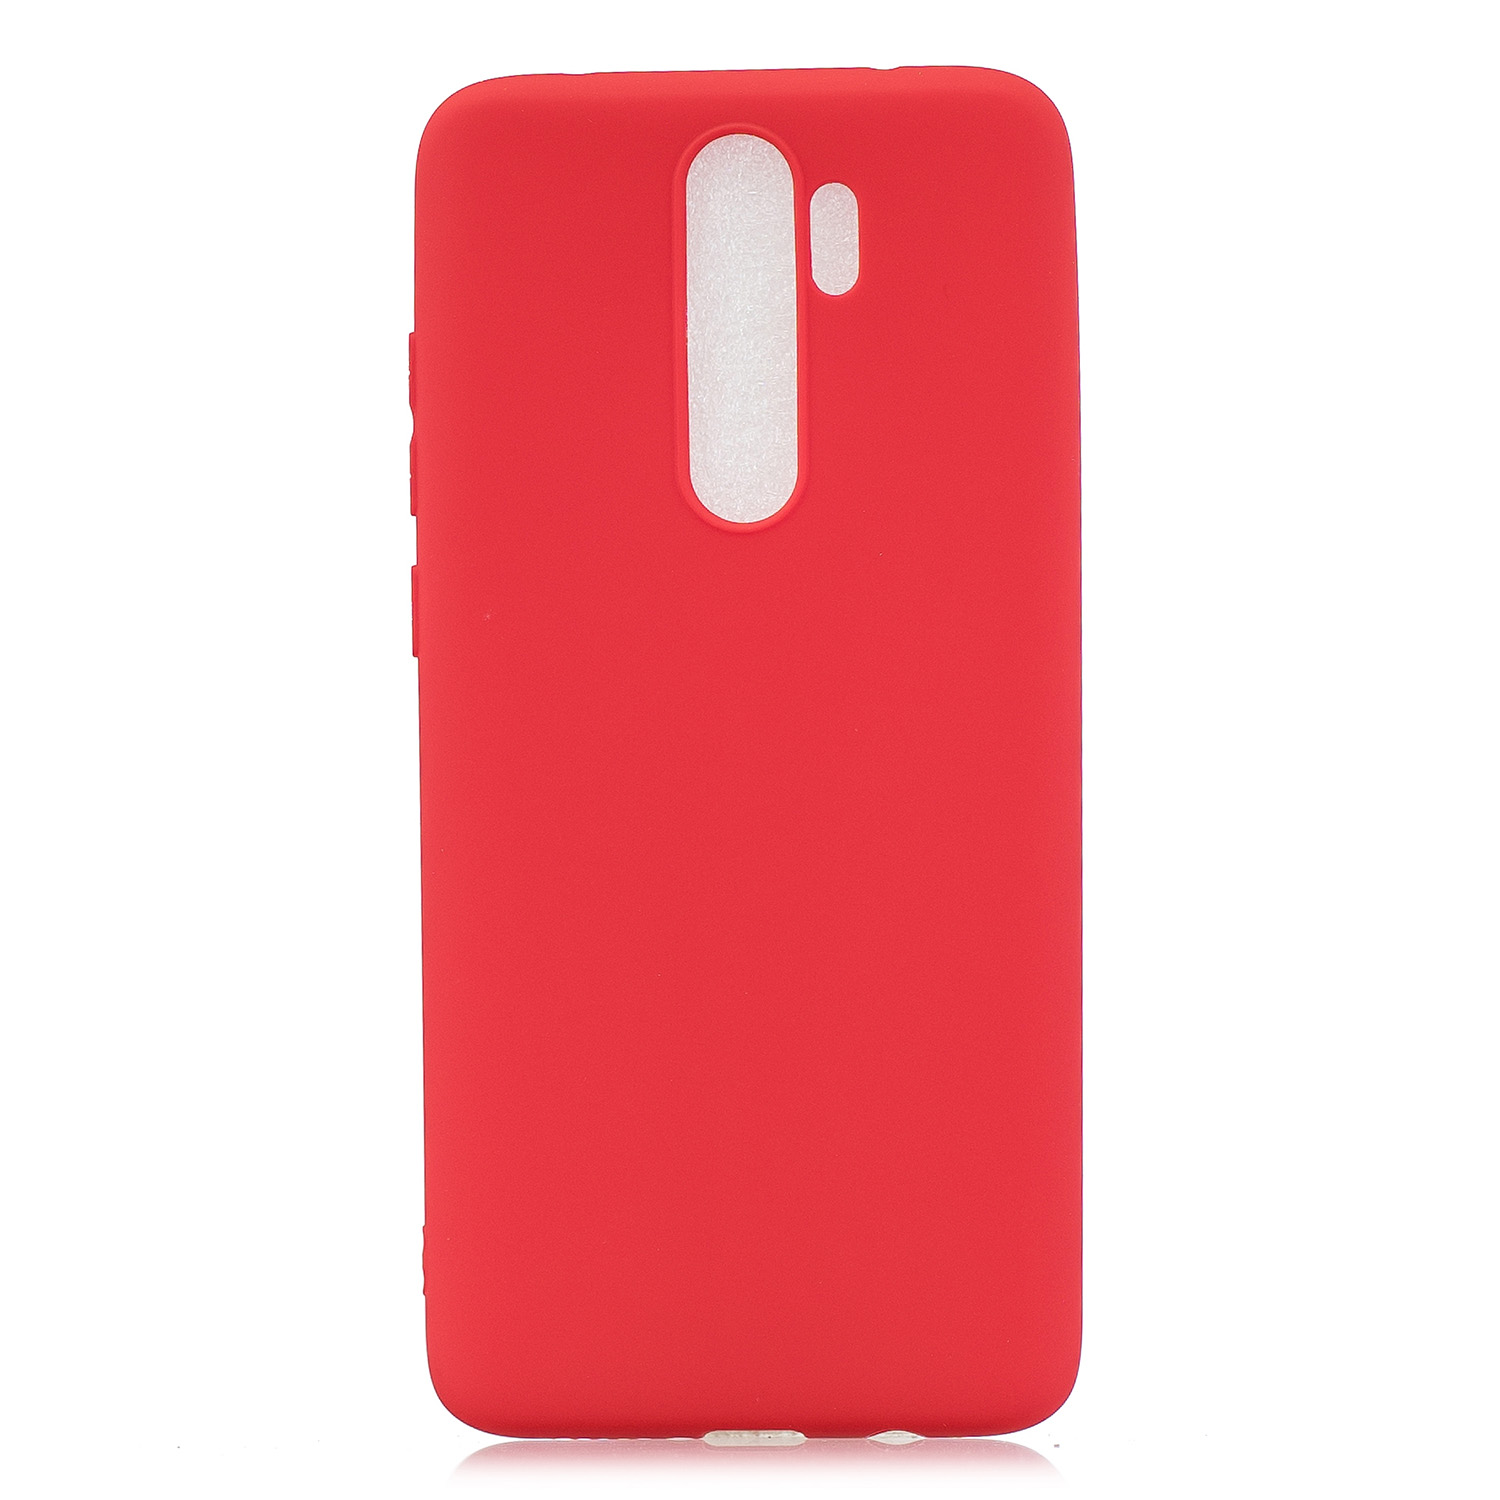 For Redmi NOTE 8 NOTE 8 Pro Soft Candy Color Frosted Surface Shockproof TPU Back Cover Mobile Phone Case red